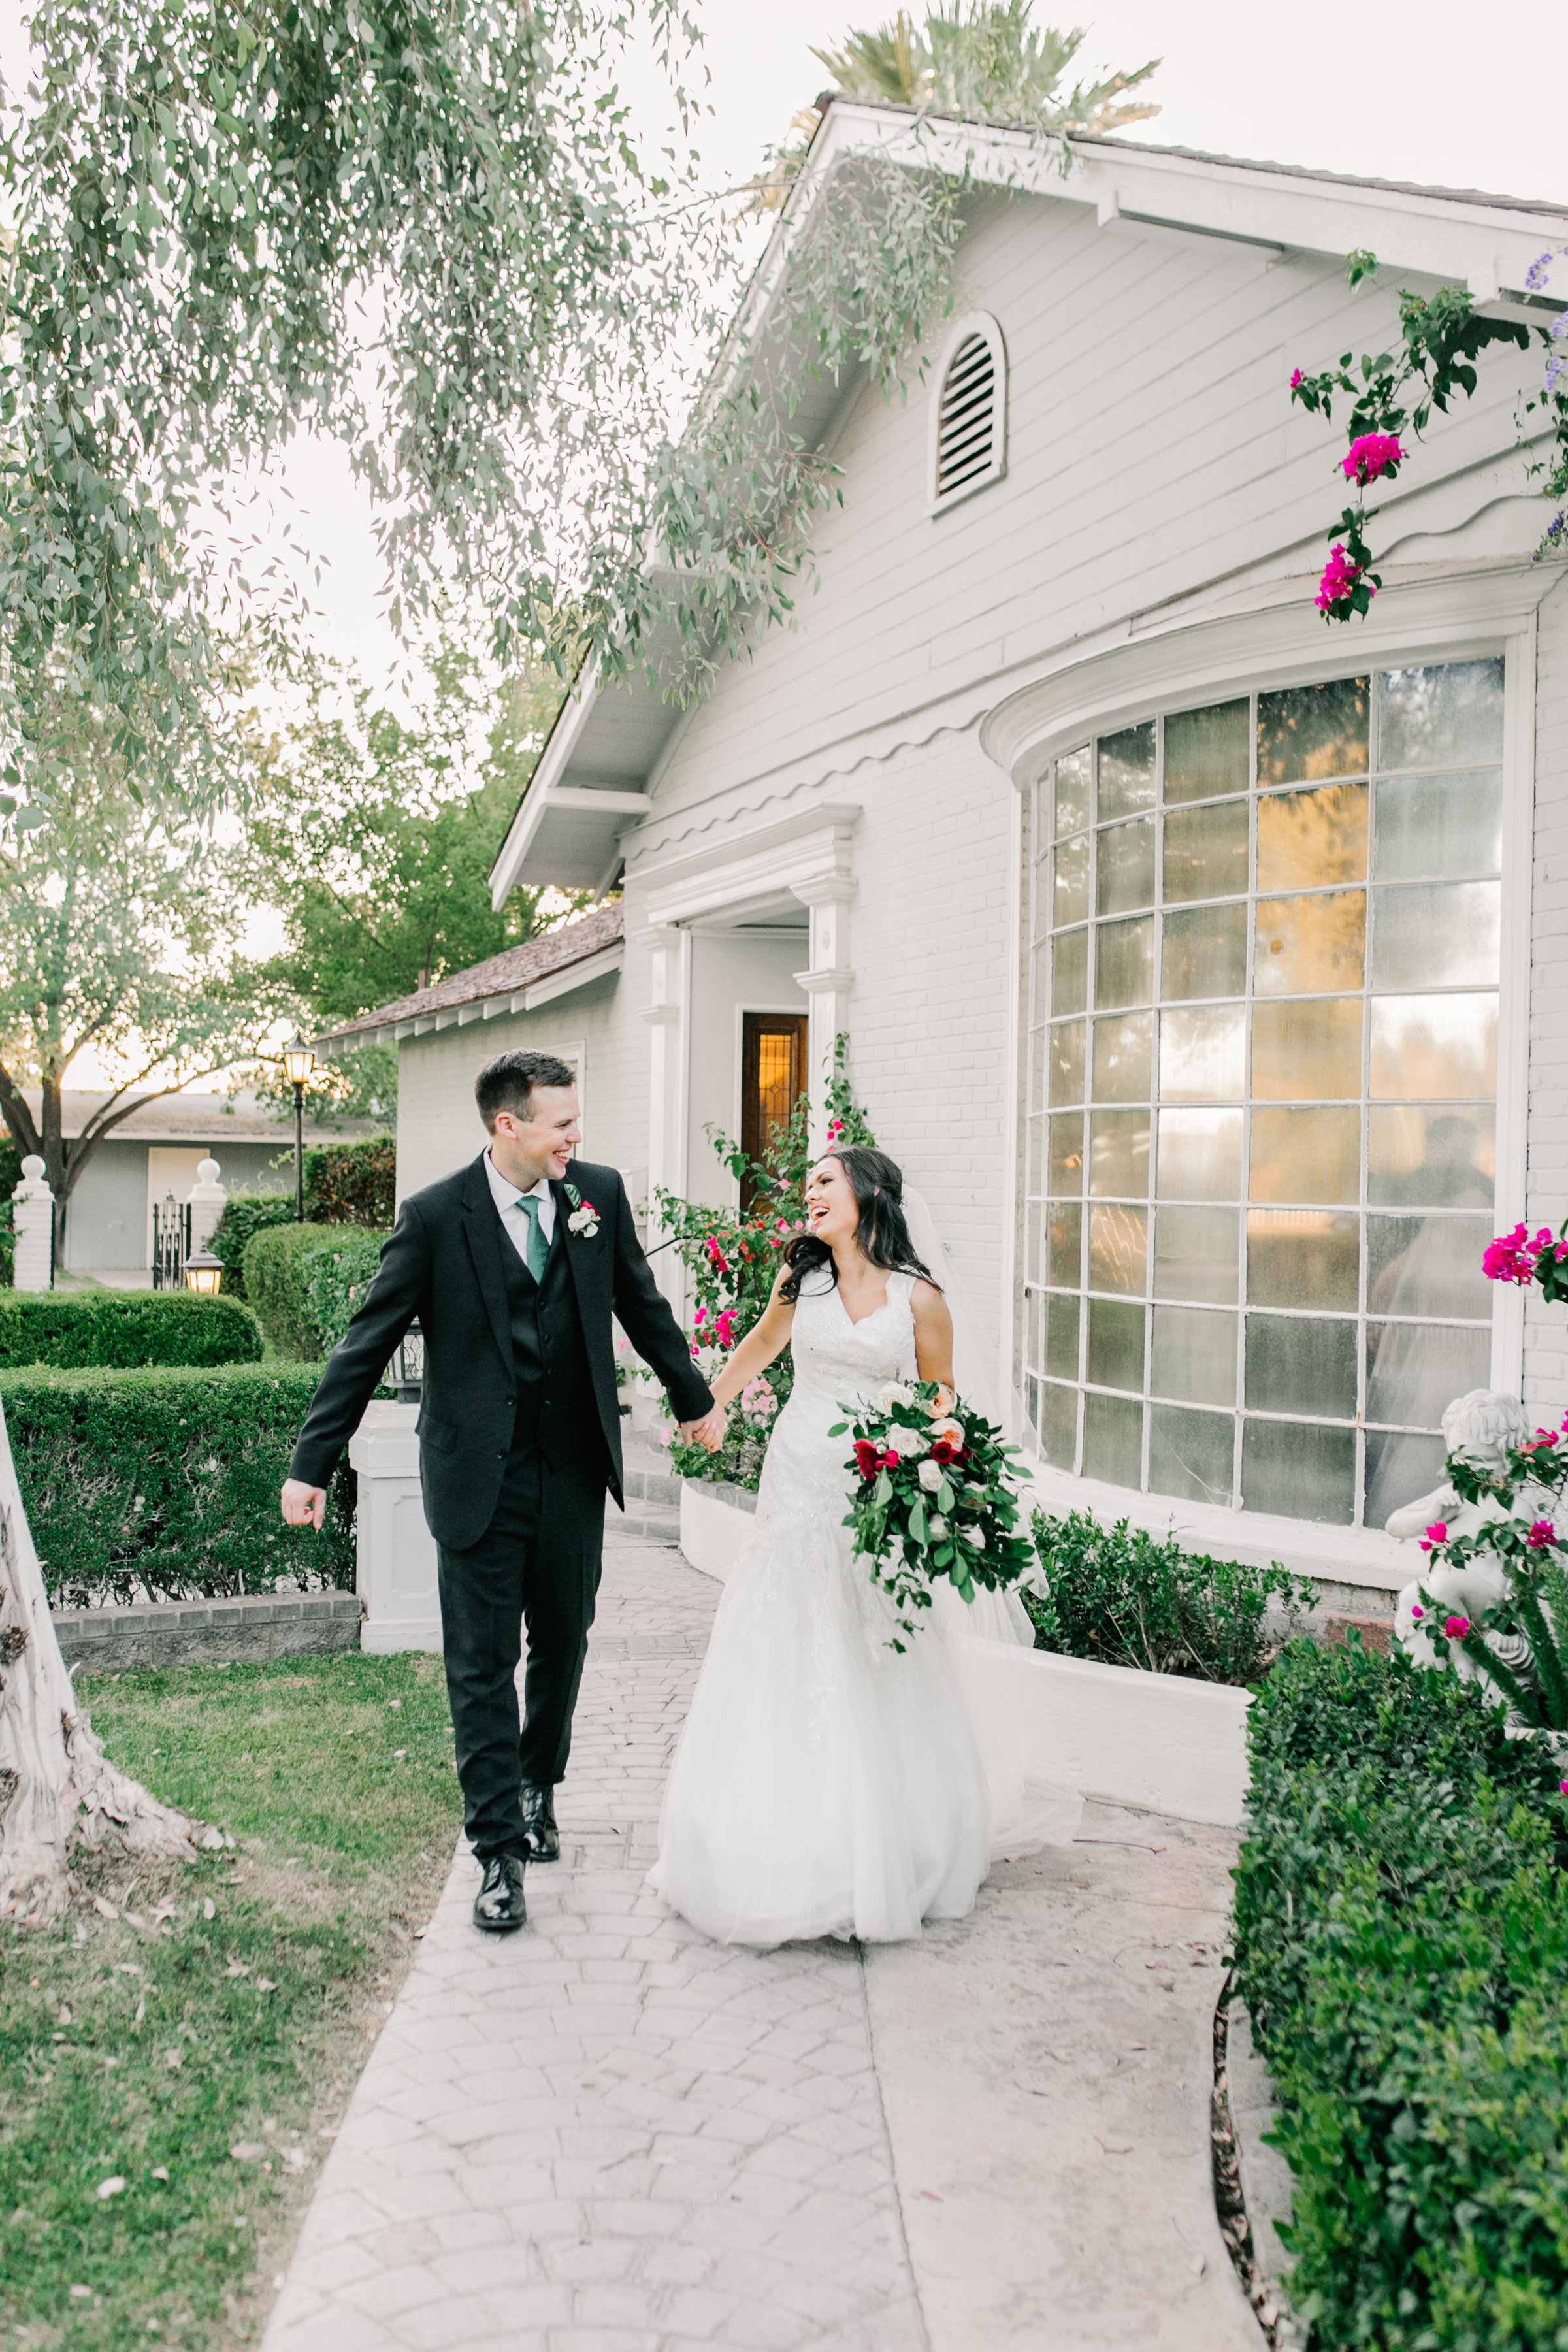 Karlie Colleen Photography - Claire & PJ Sneak Peak- The Wright House - Phoenix Arizona -132